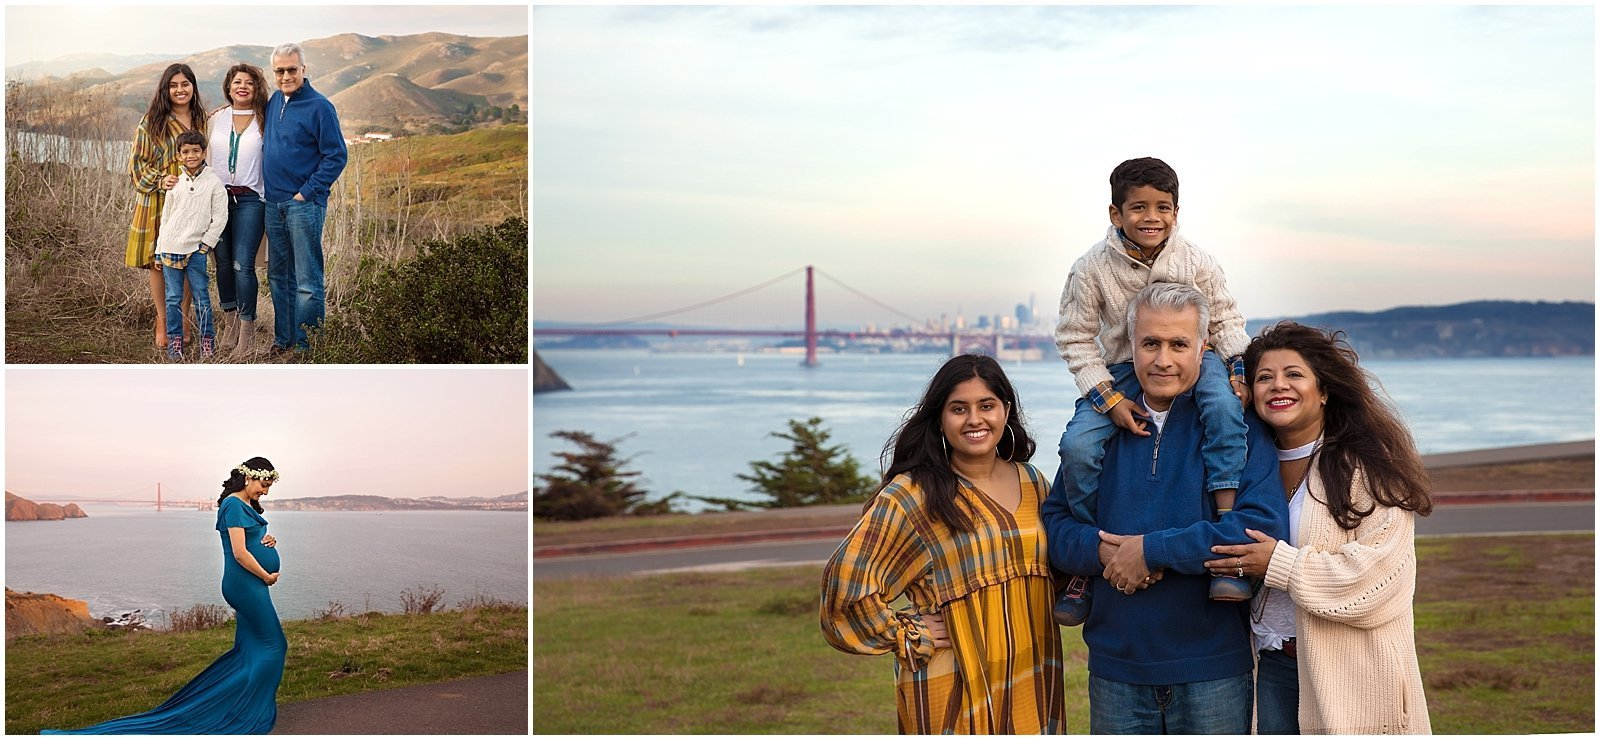 San Francisco Family Photographer Family Photographs in front of Golden Gate Bridge